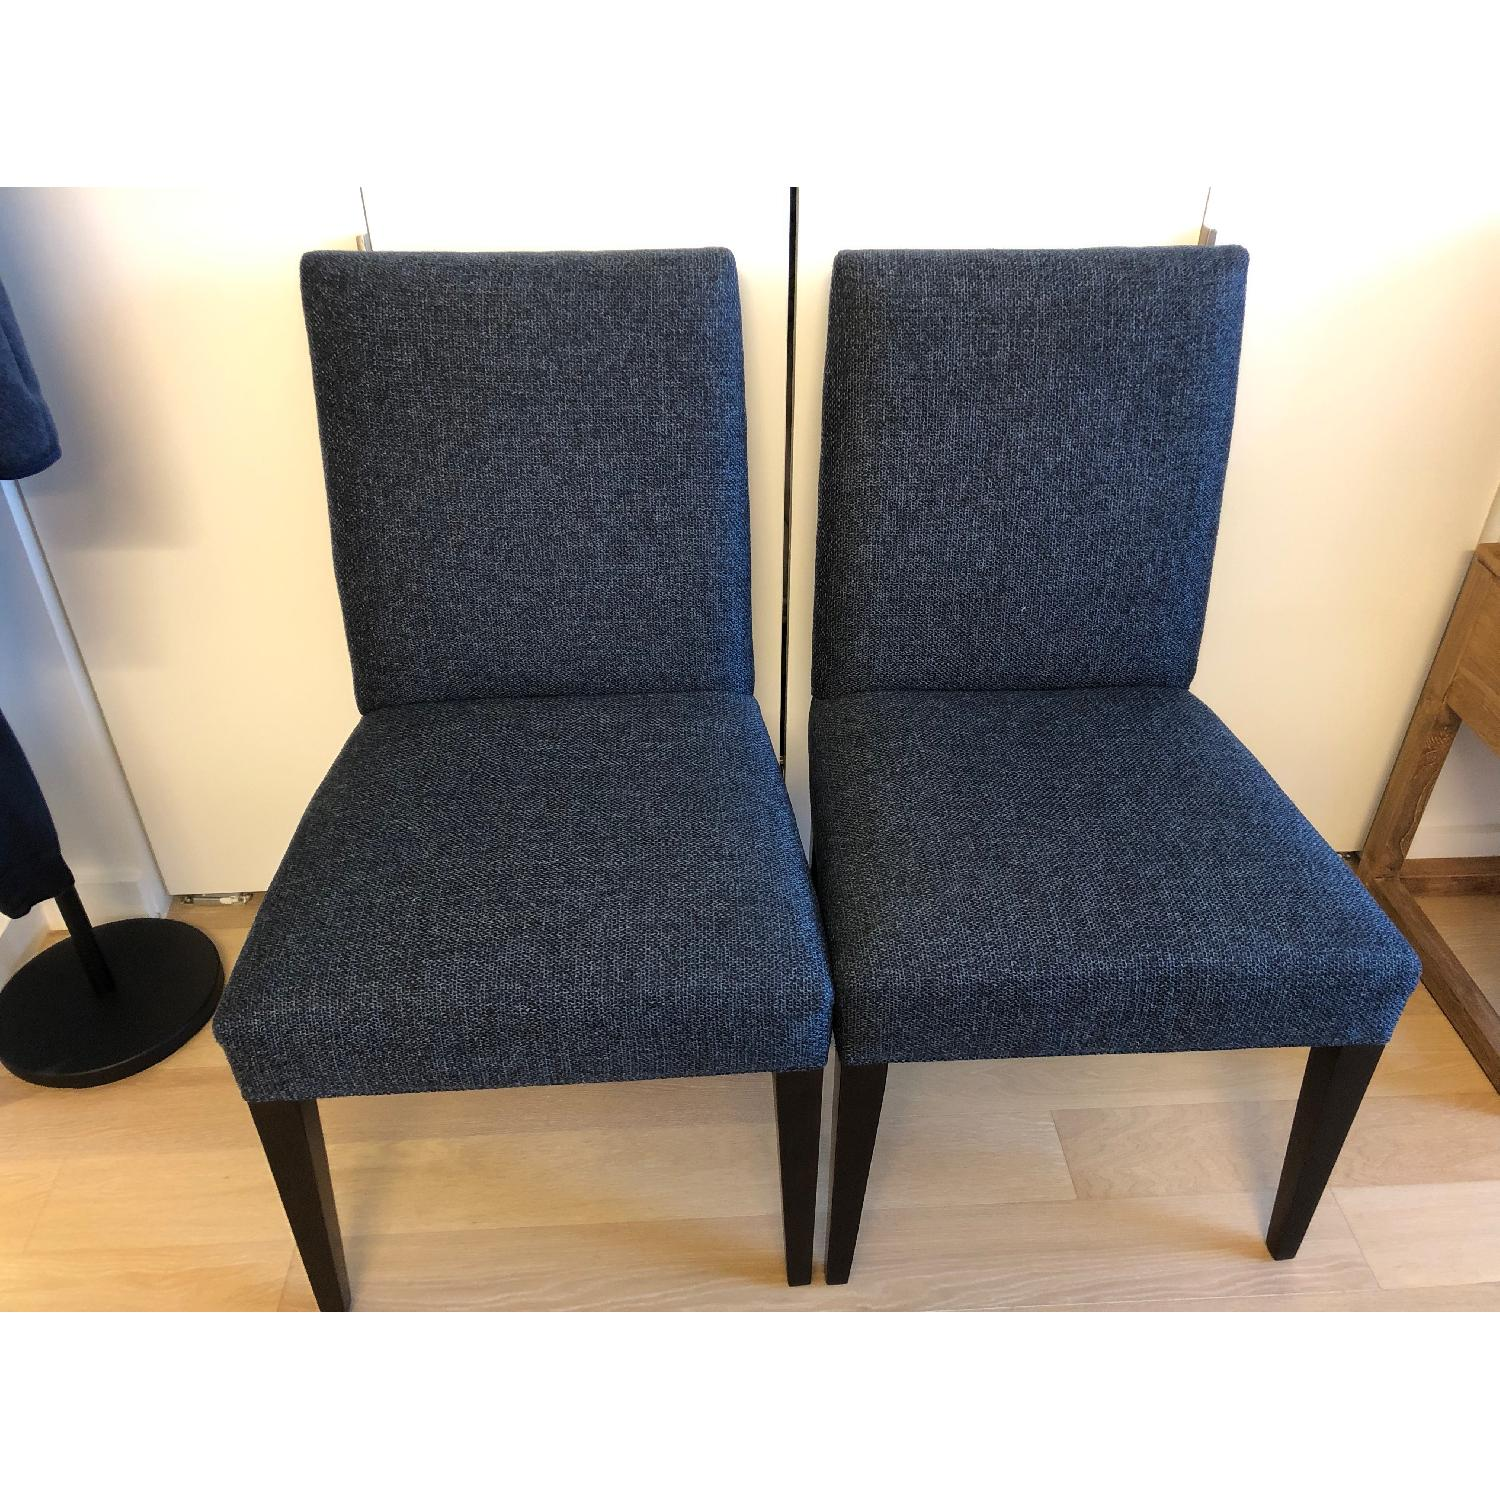 Crate & Barrel Miles Upholstered Dining Chair - image-1